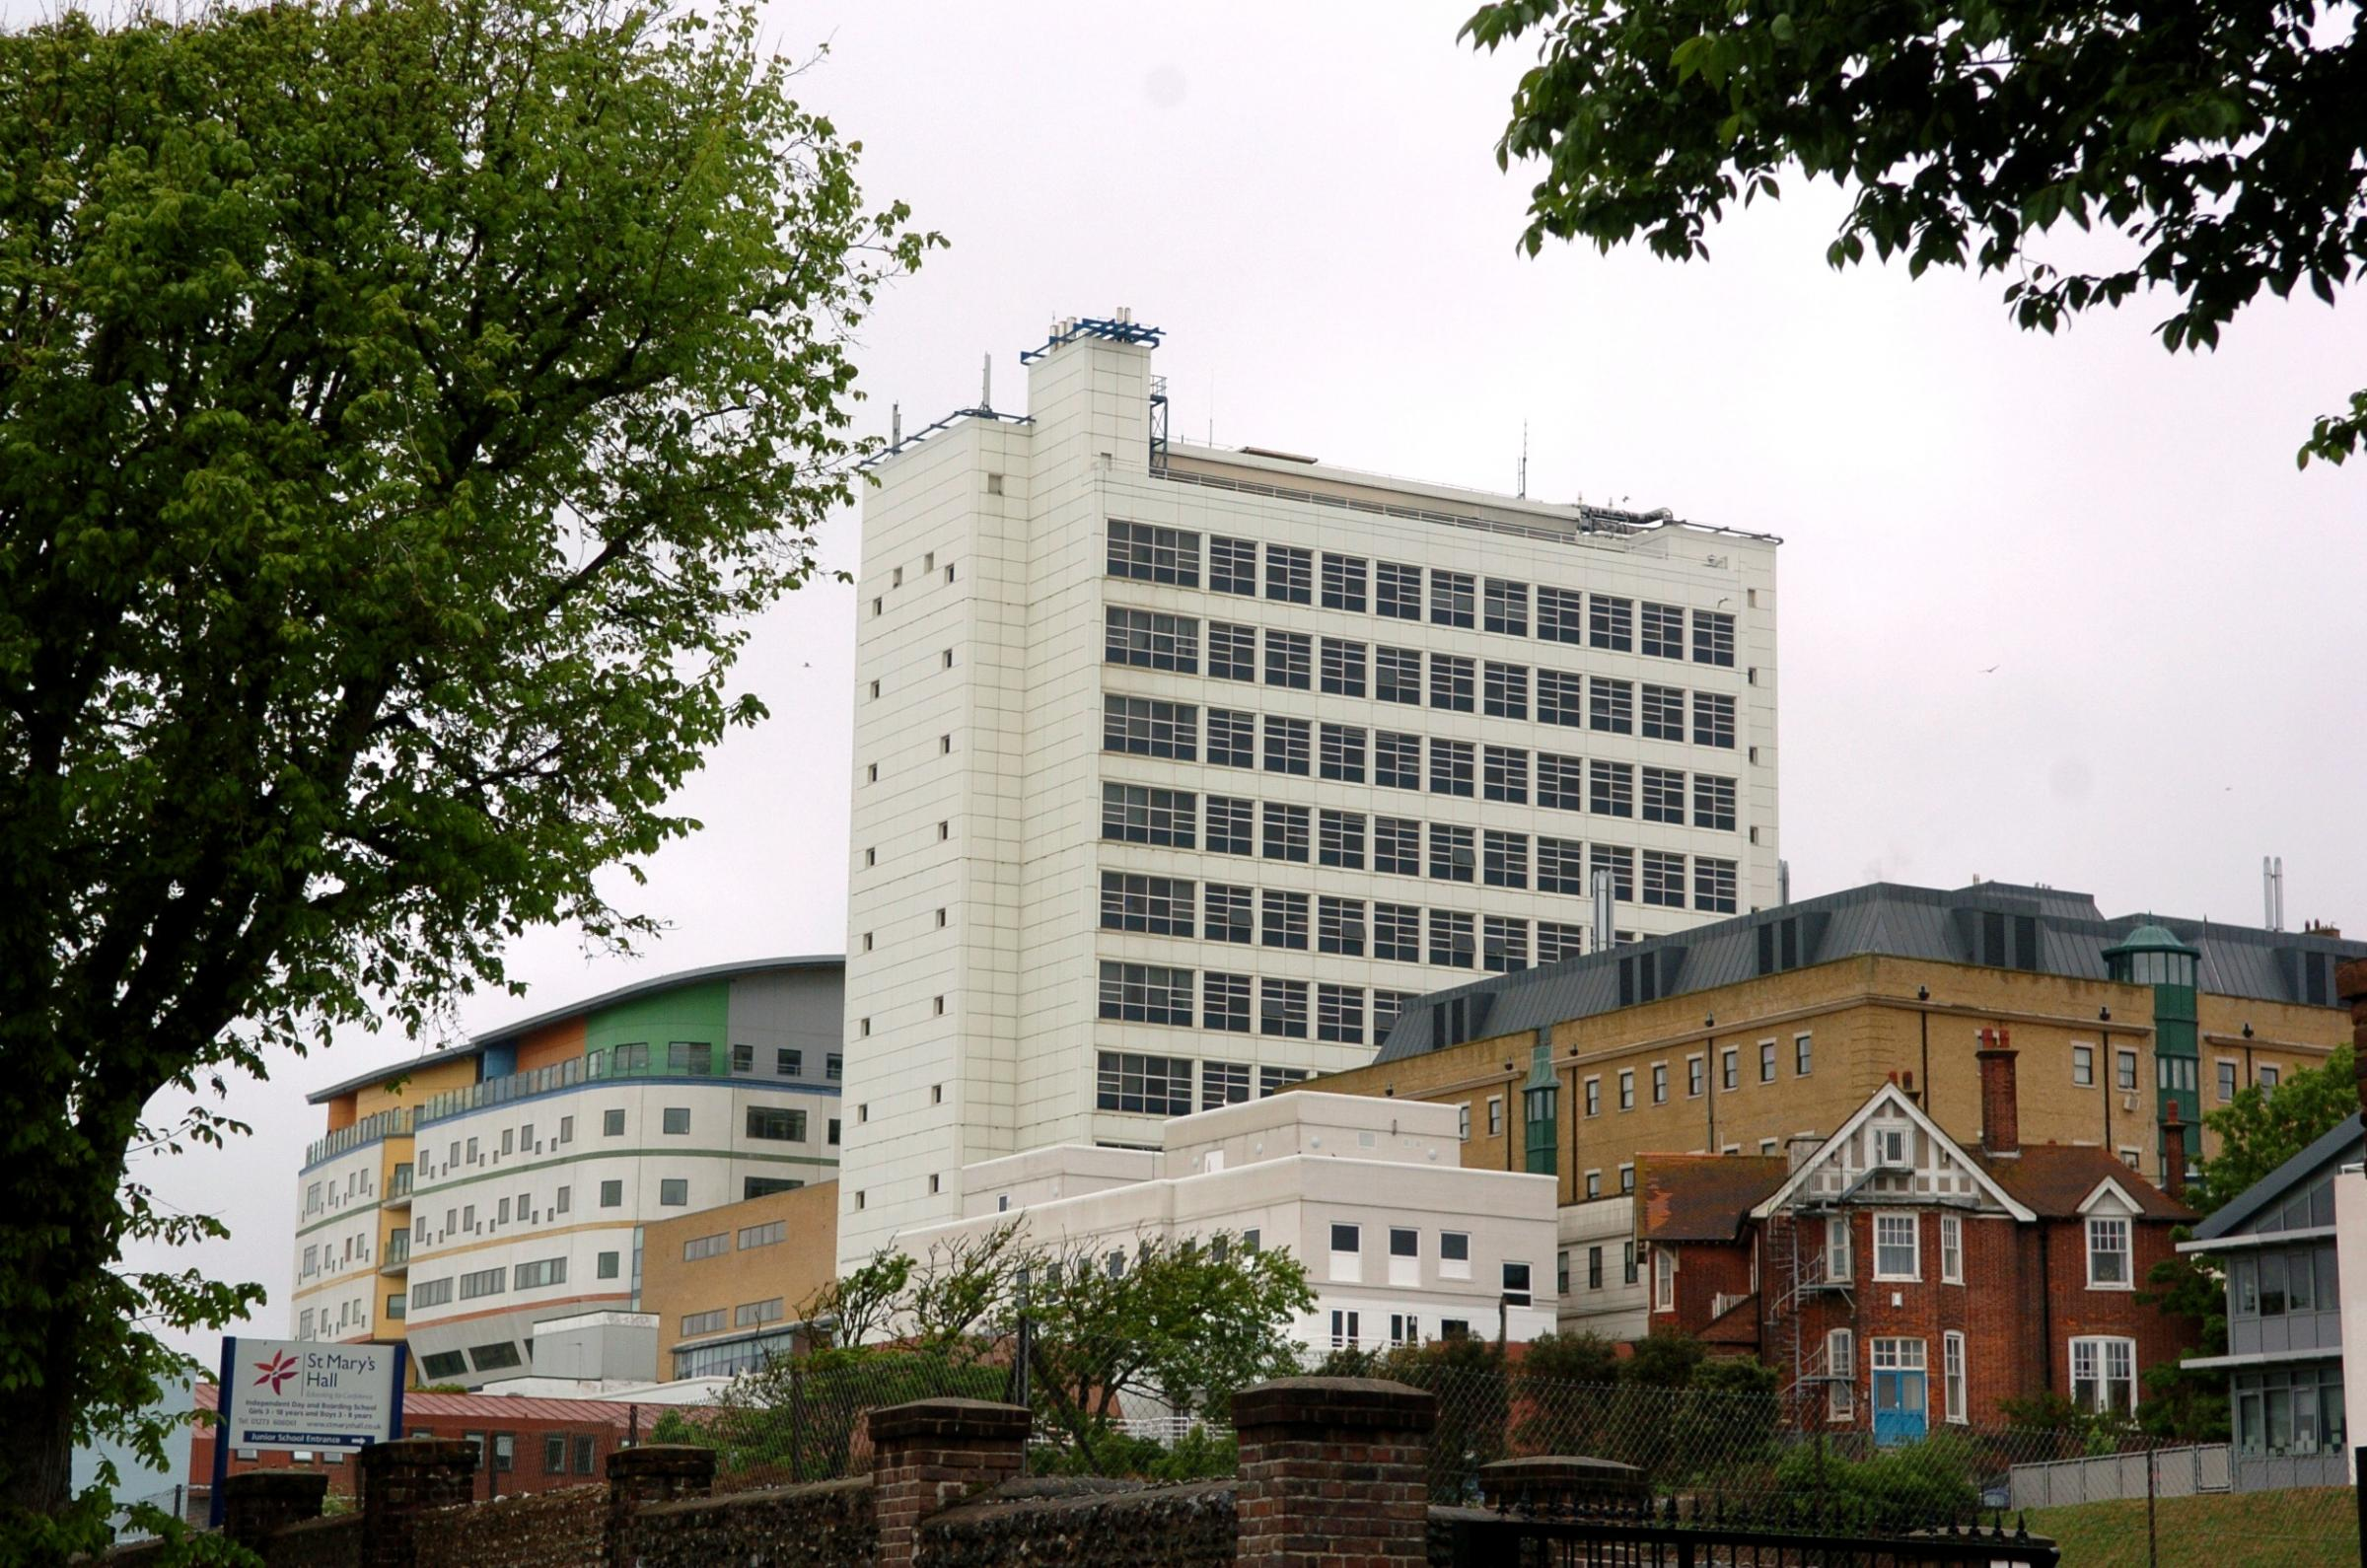 The Royal Sussex County Hospital